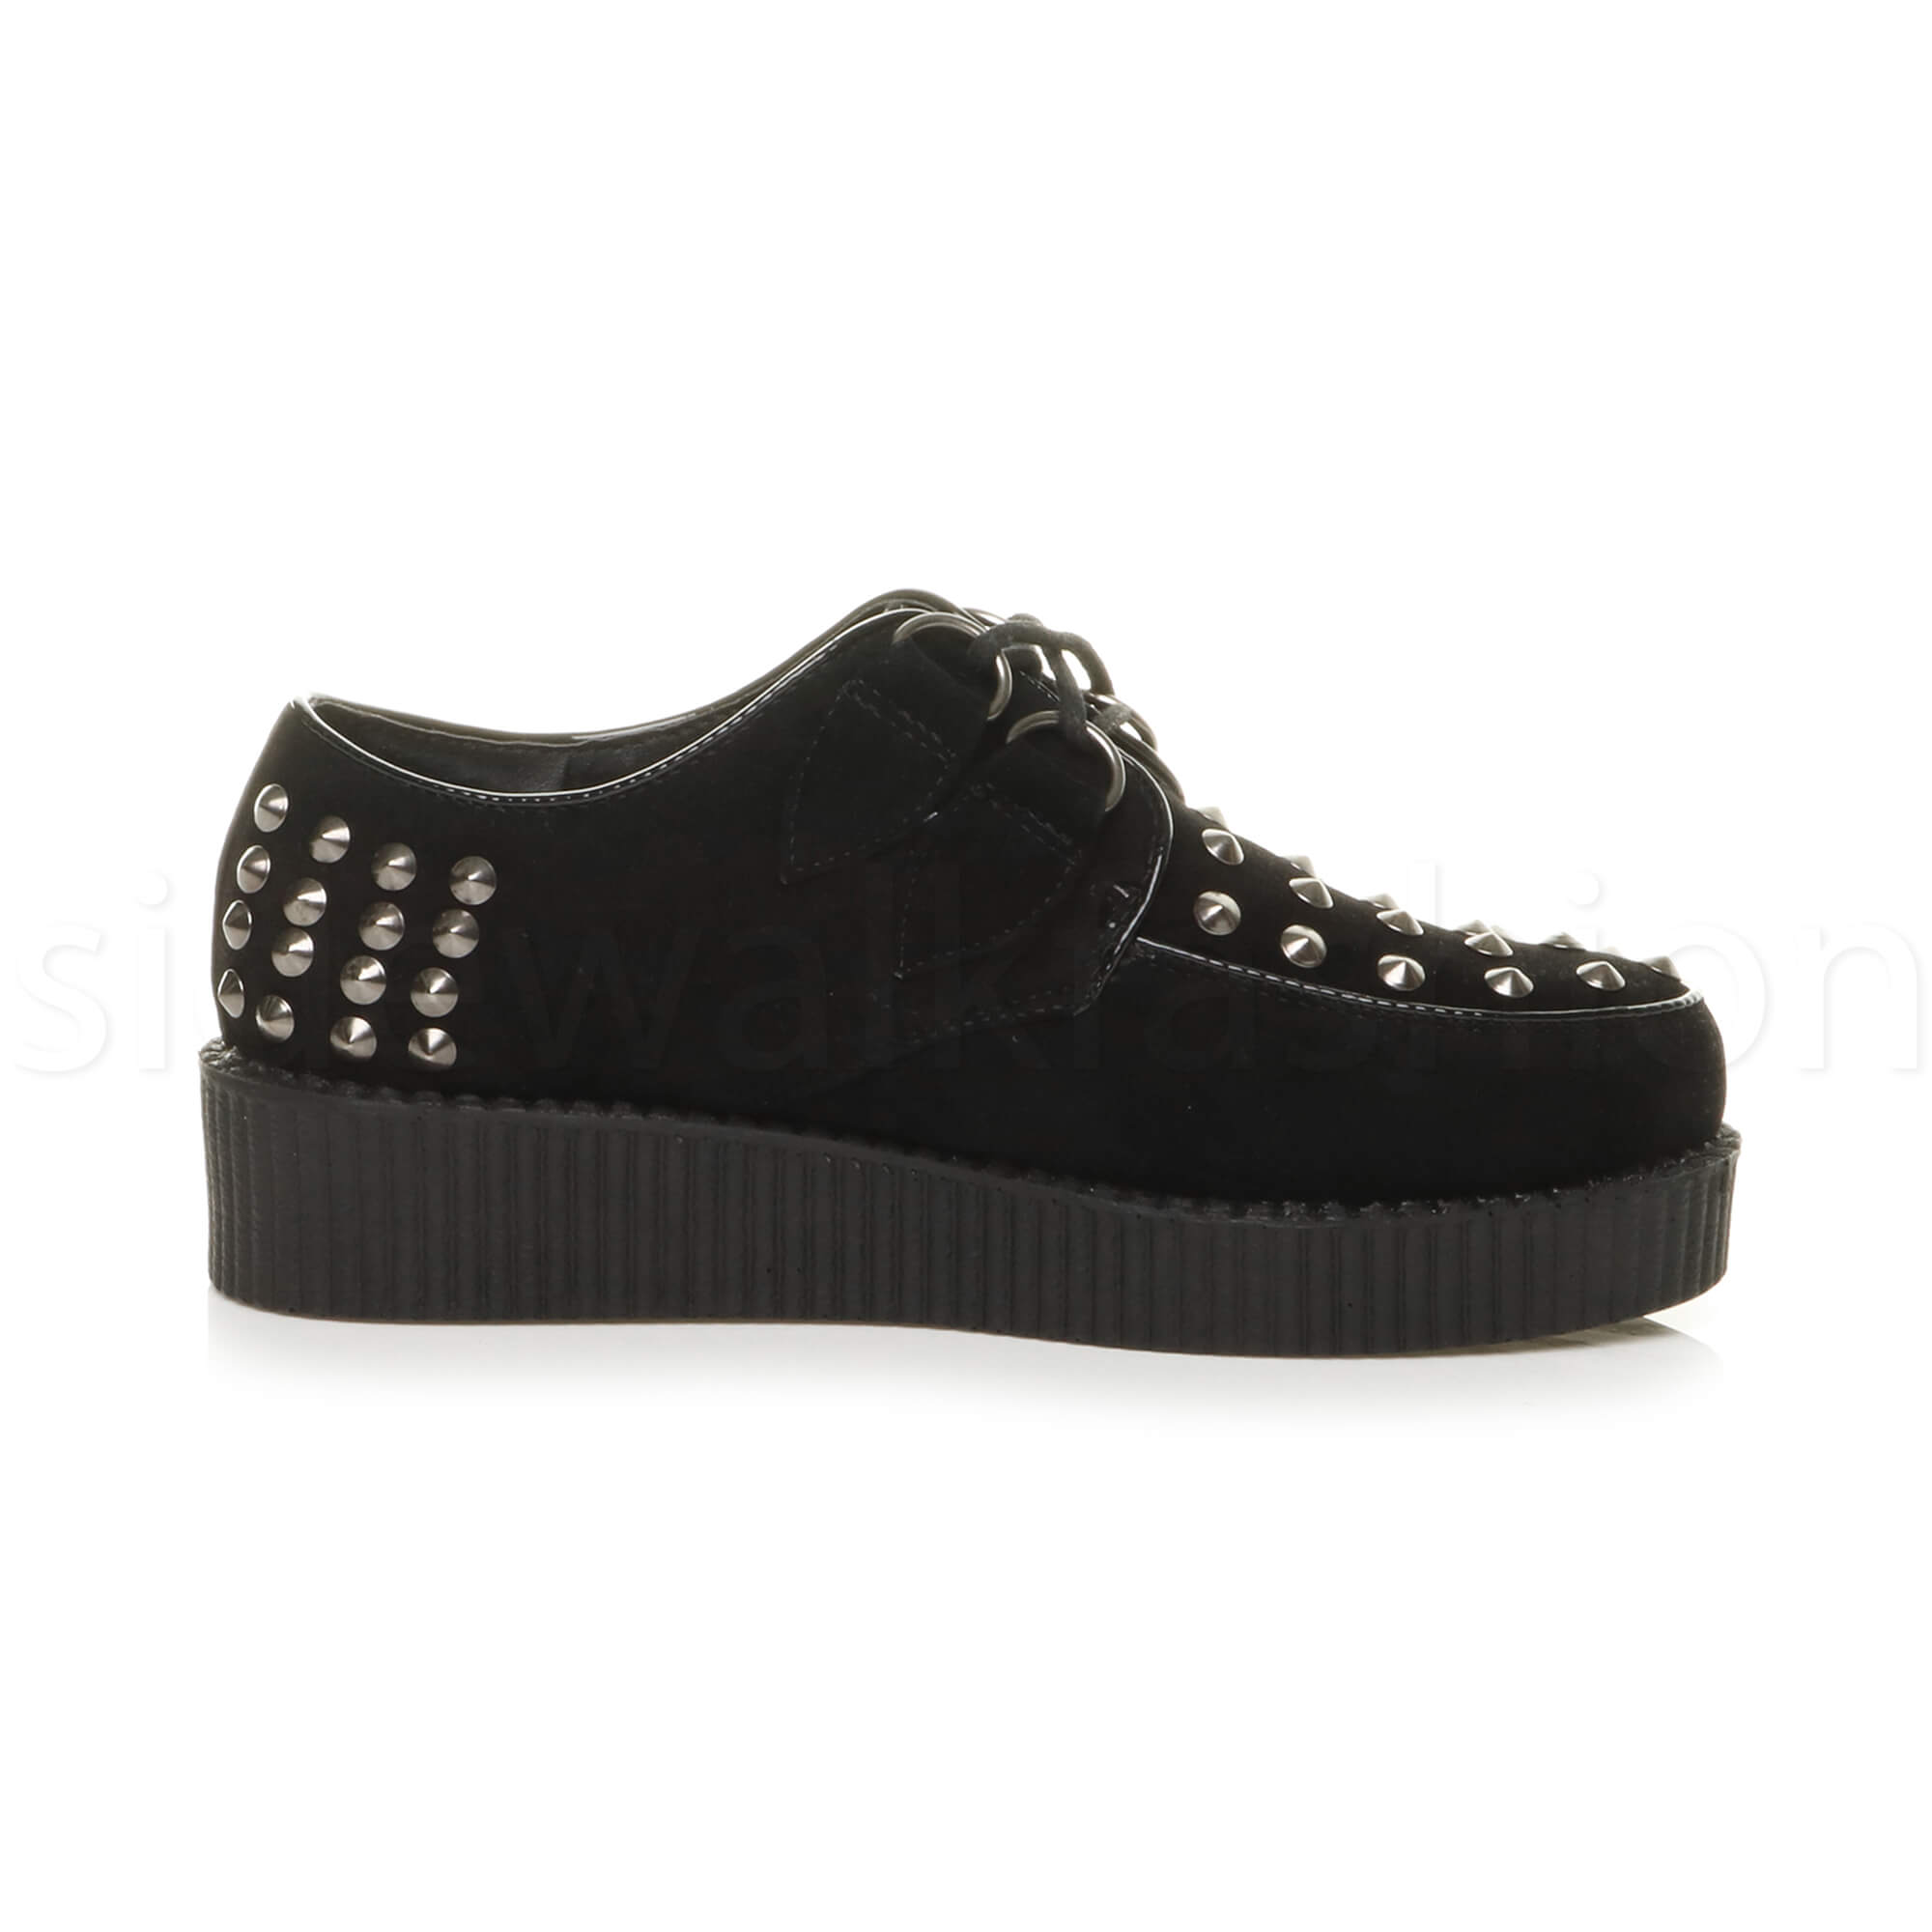 Womens-ladies-flat-platform-wedge-lace-up-goth-punk-creepers-shoes-boots-size miniatura 20